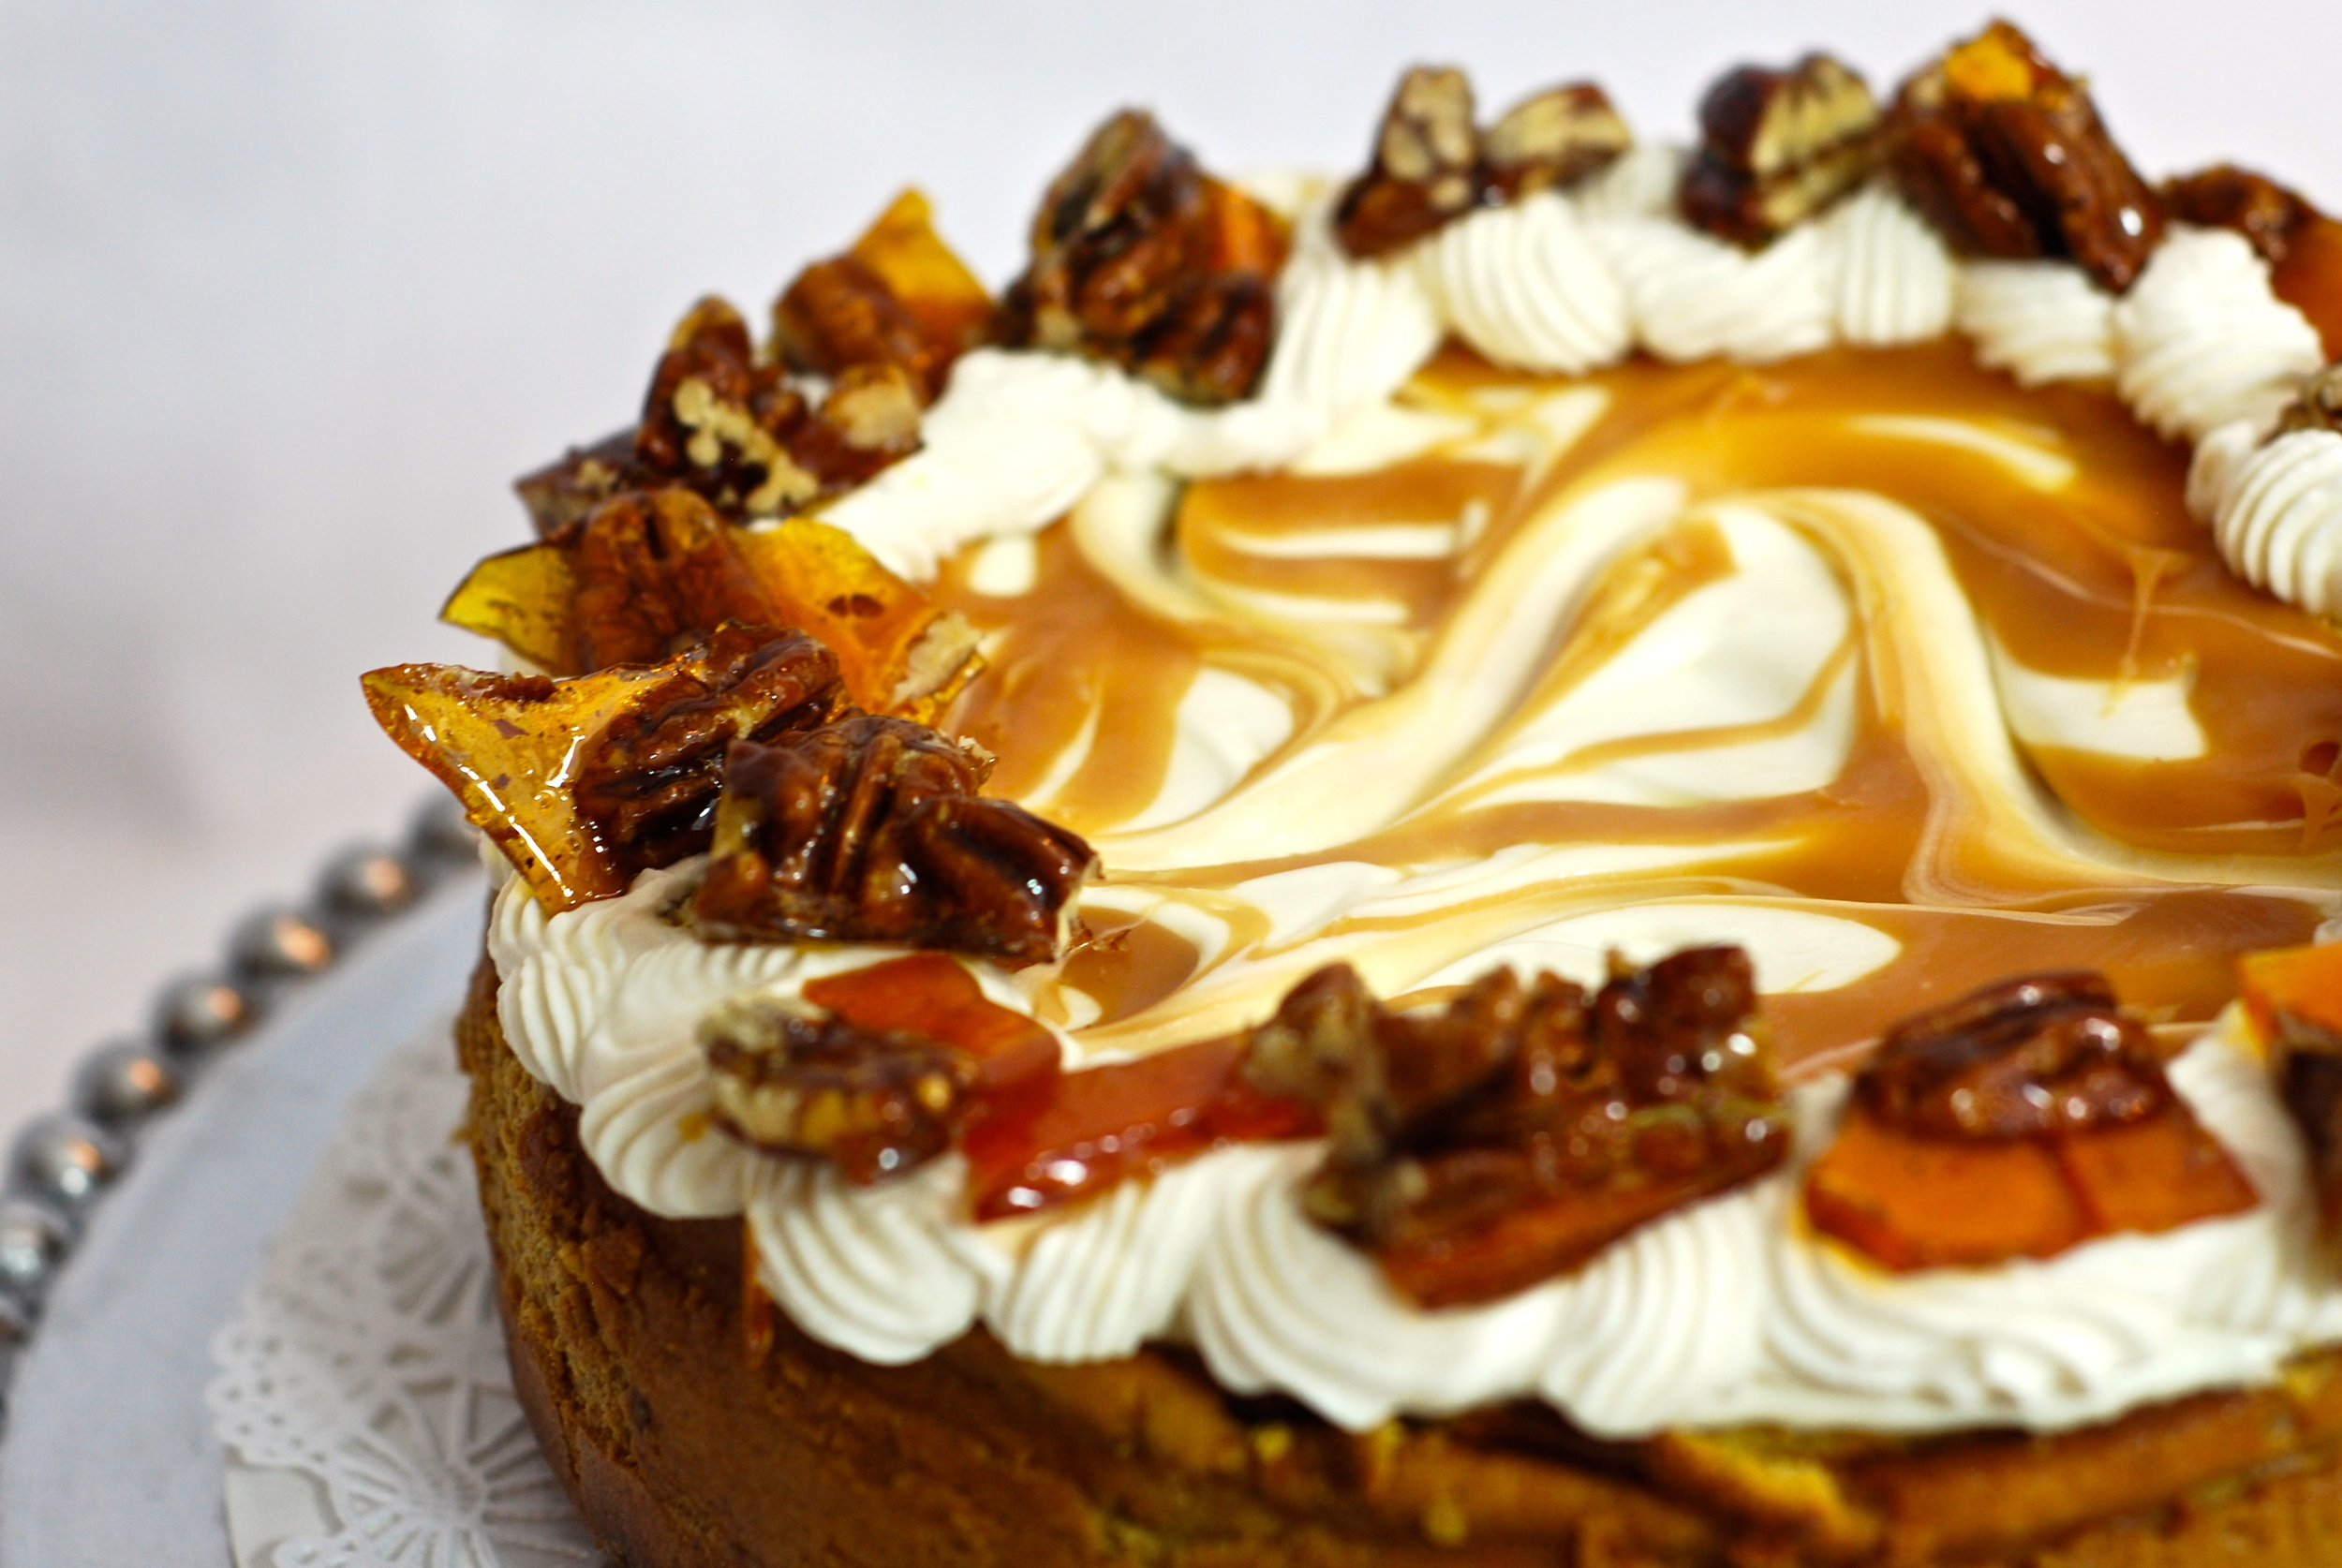 Pumpkin Cheesecake with Caramel Swirl and Pecan Brittle